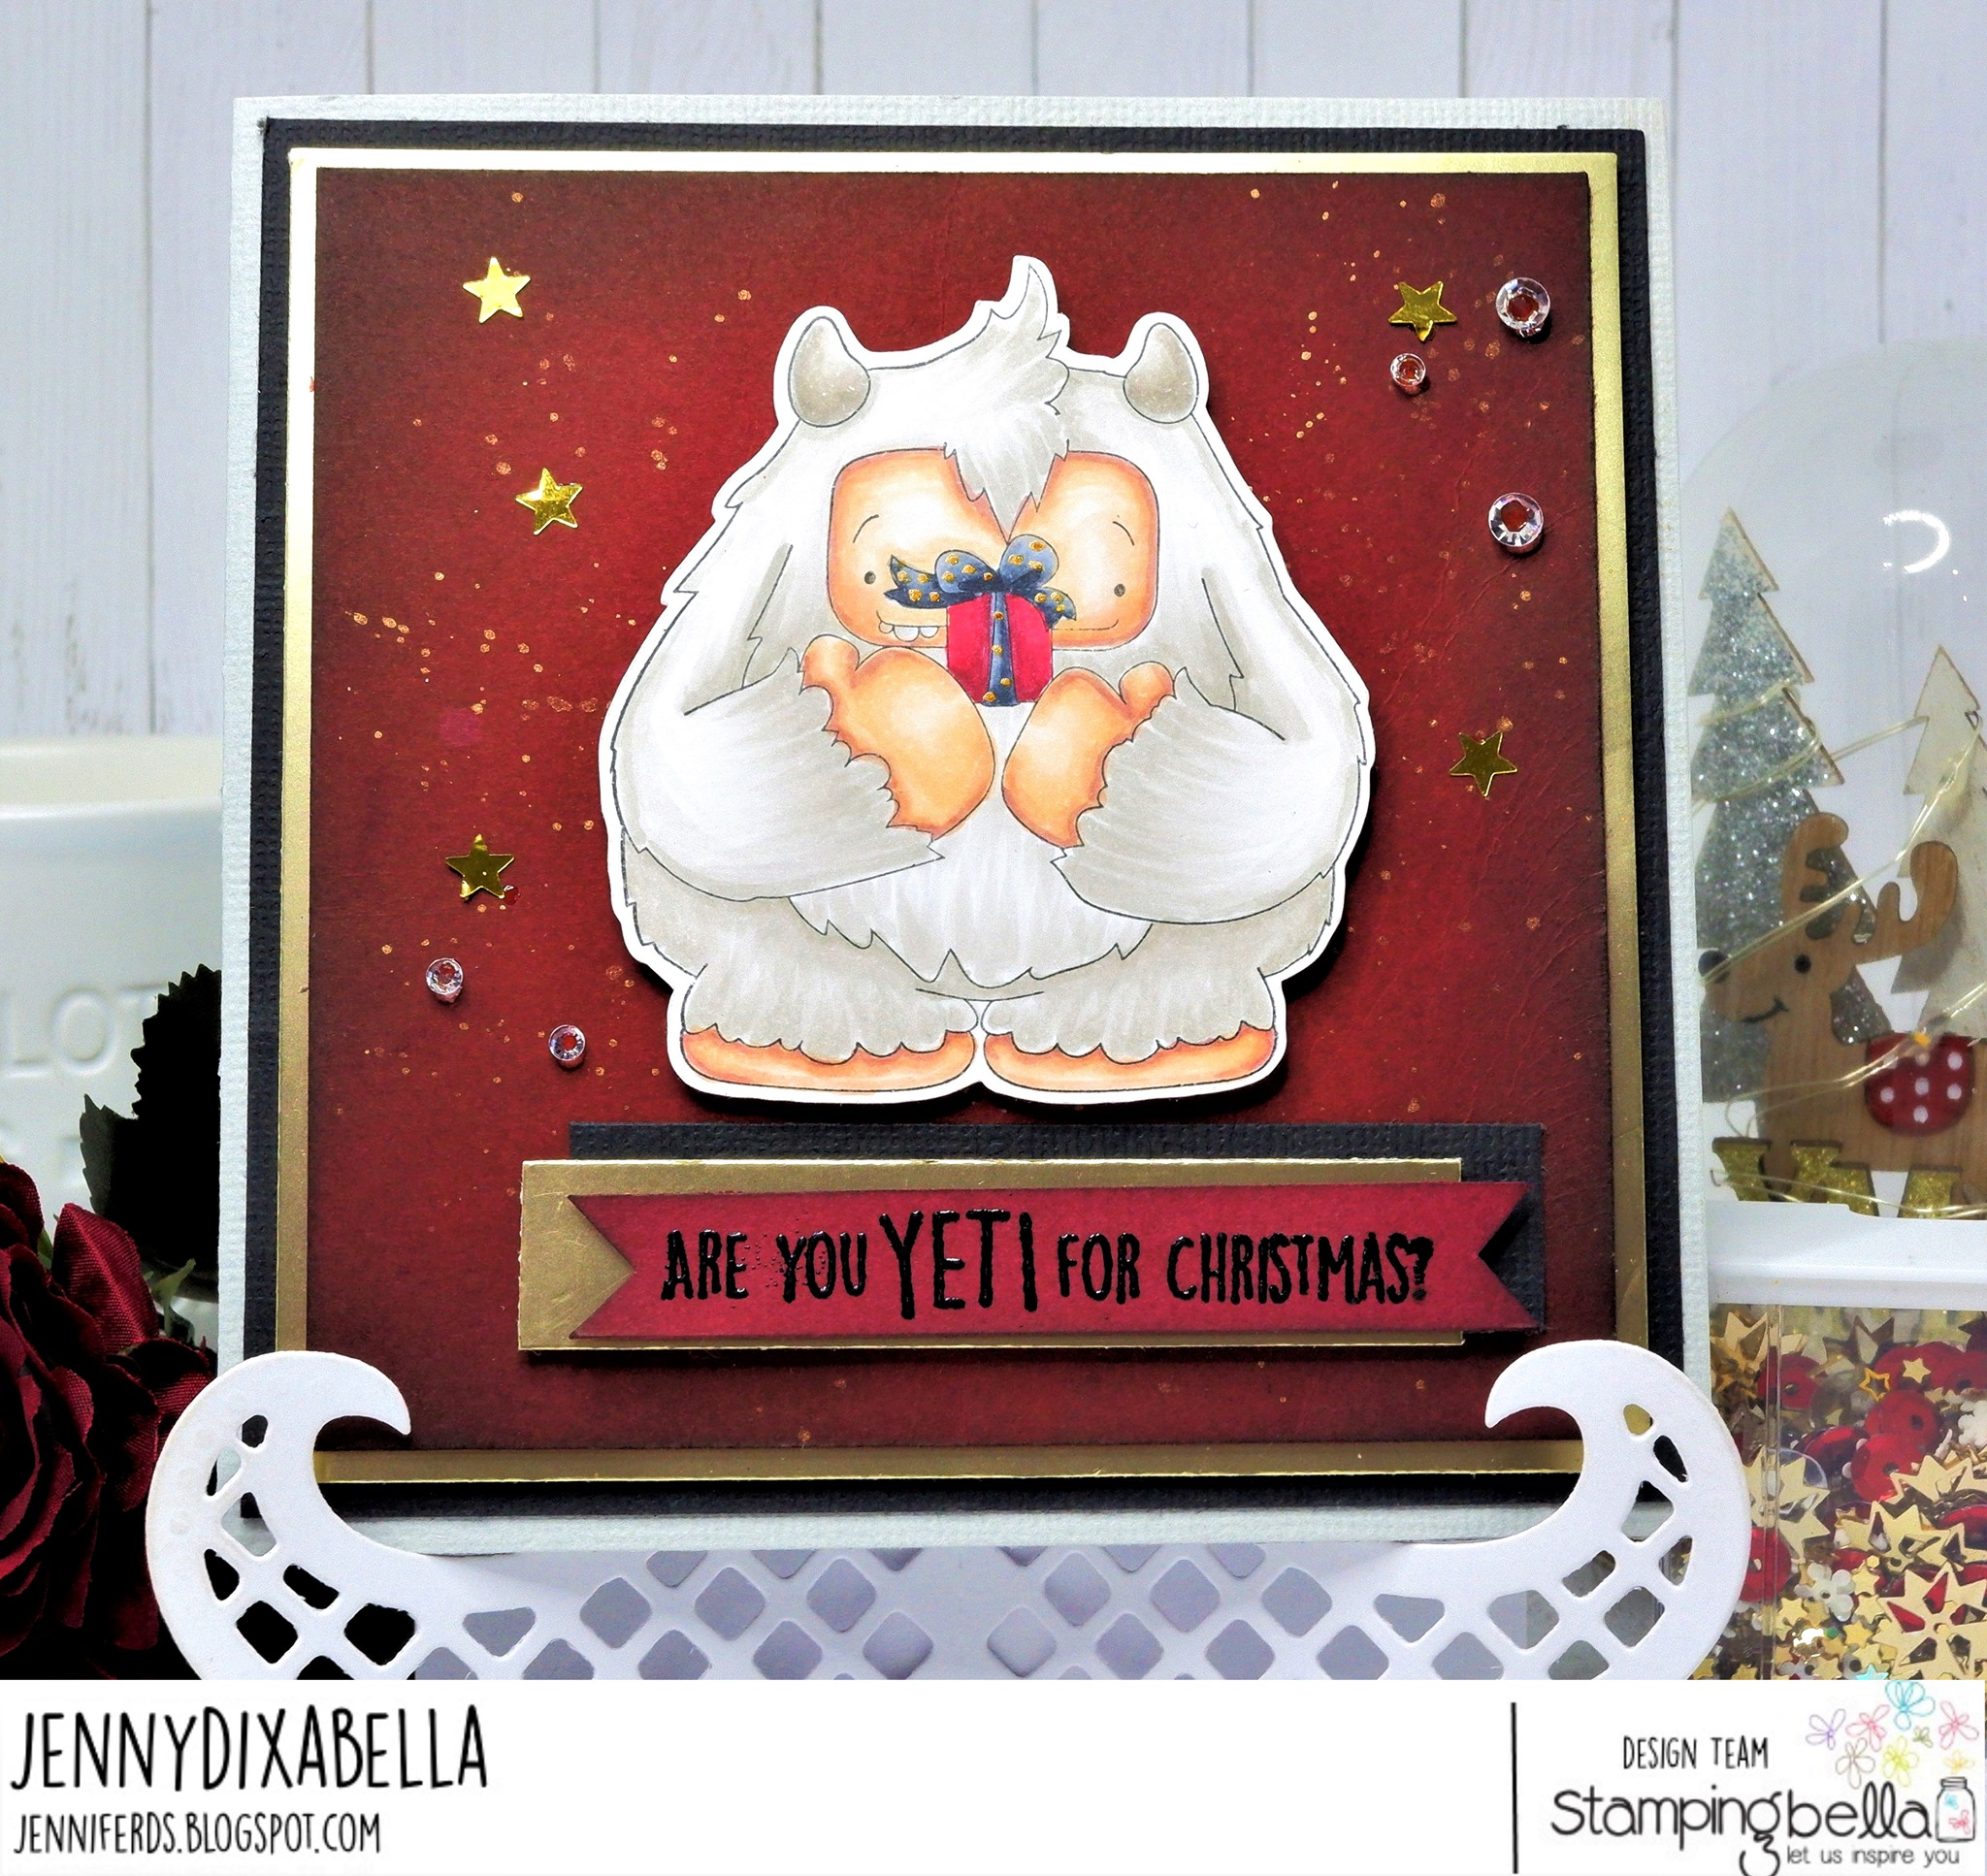 www.stampingbella.com: rubber stamp used: A GIFT FROM YETI. card by Jenny Dix